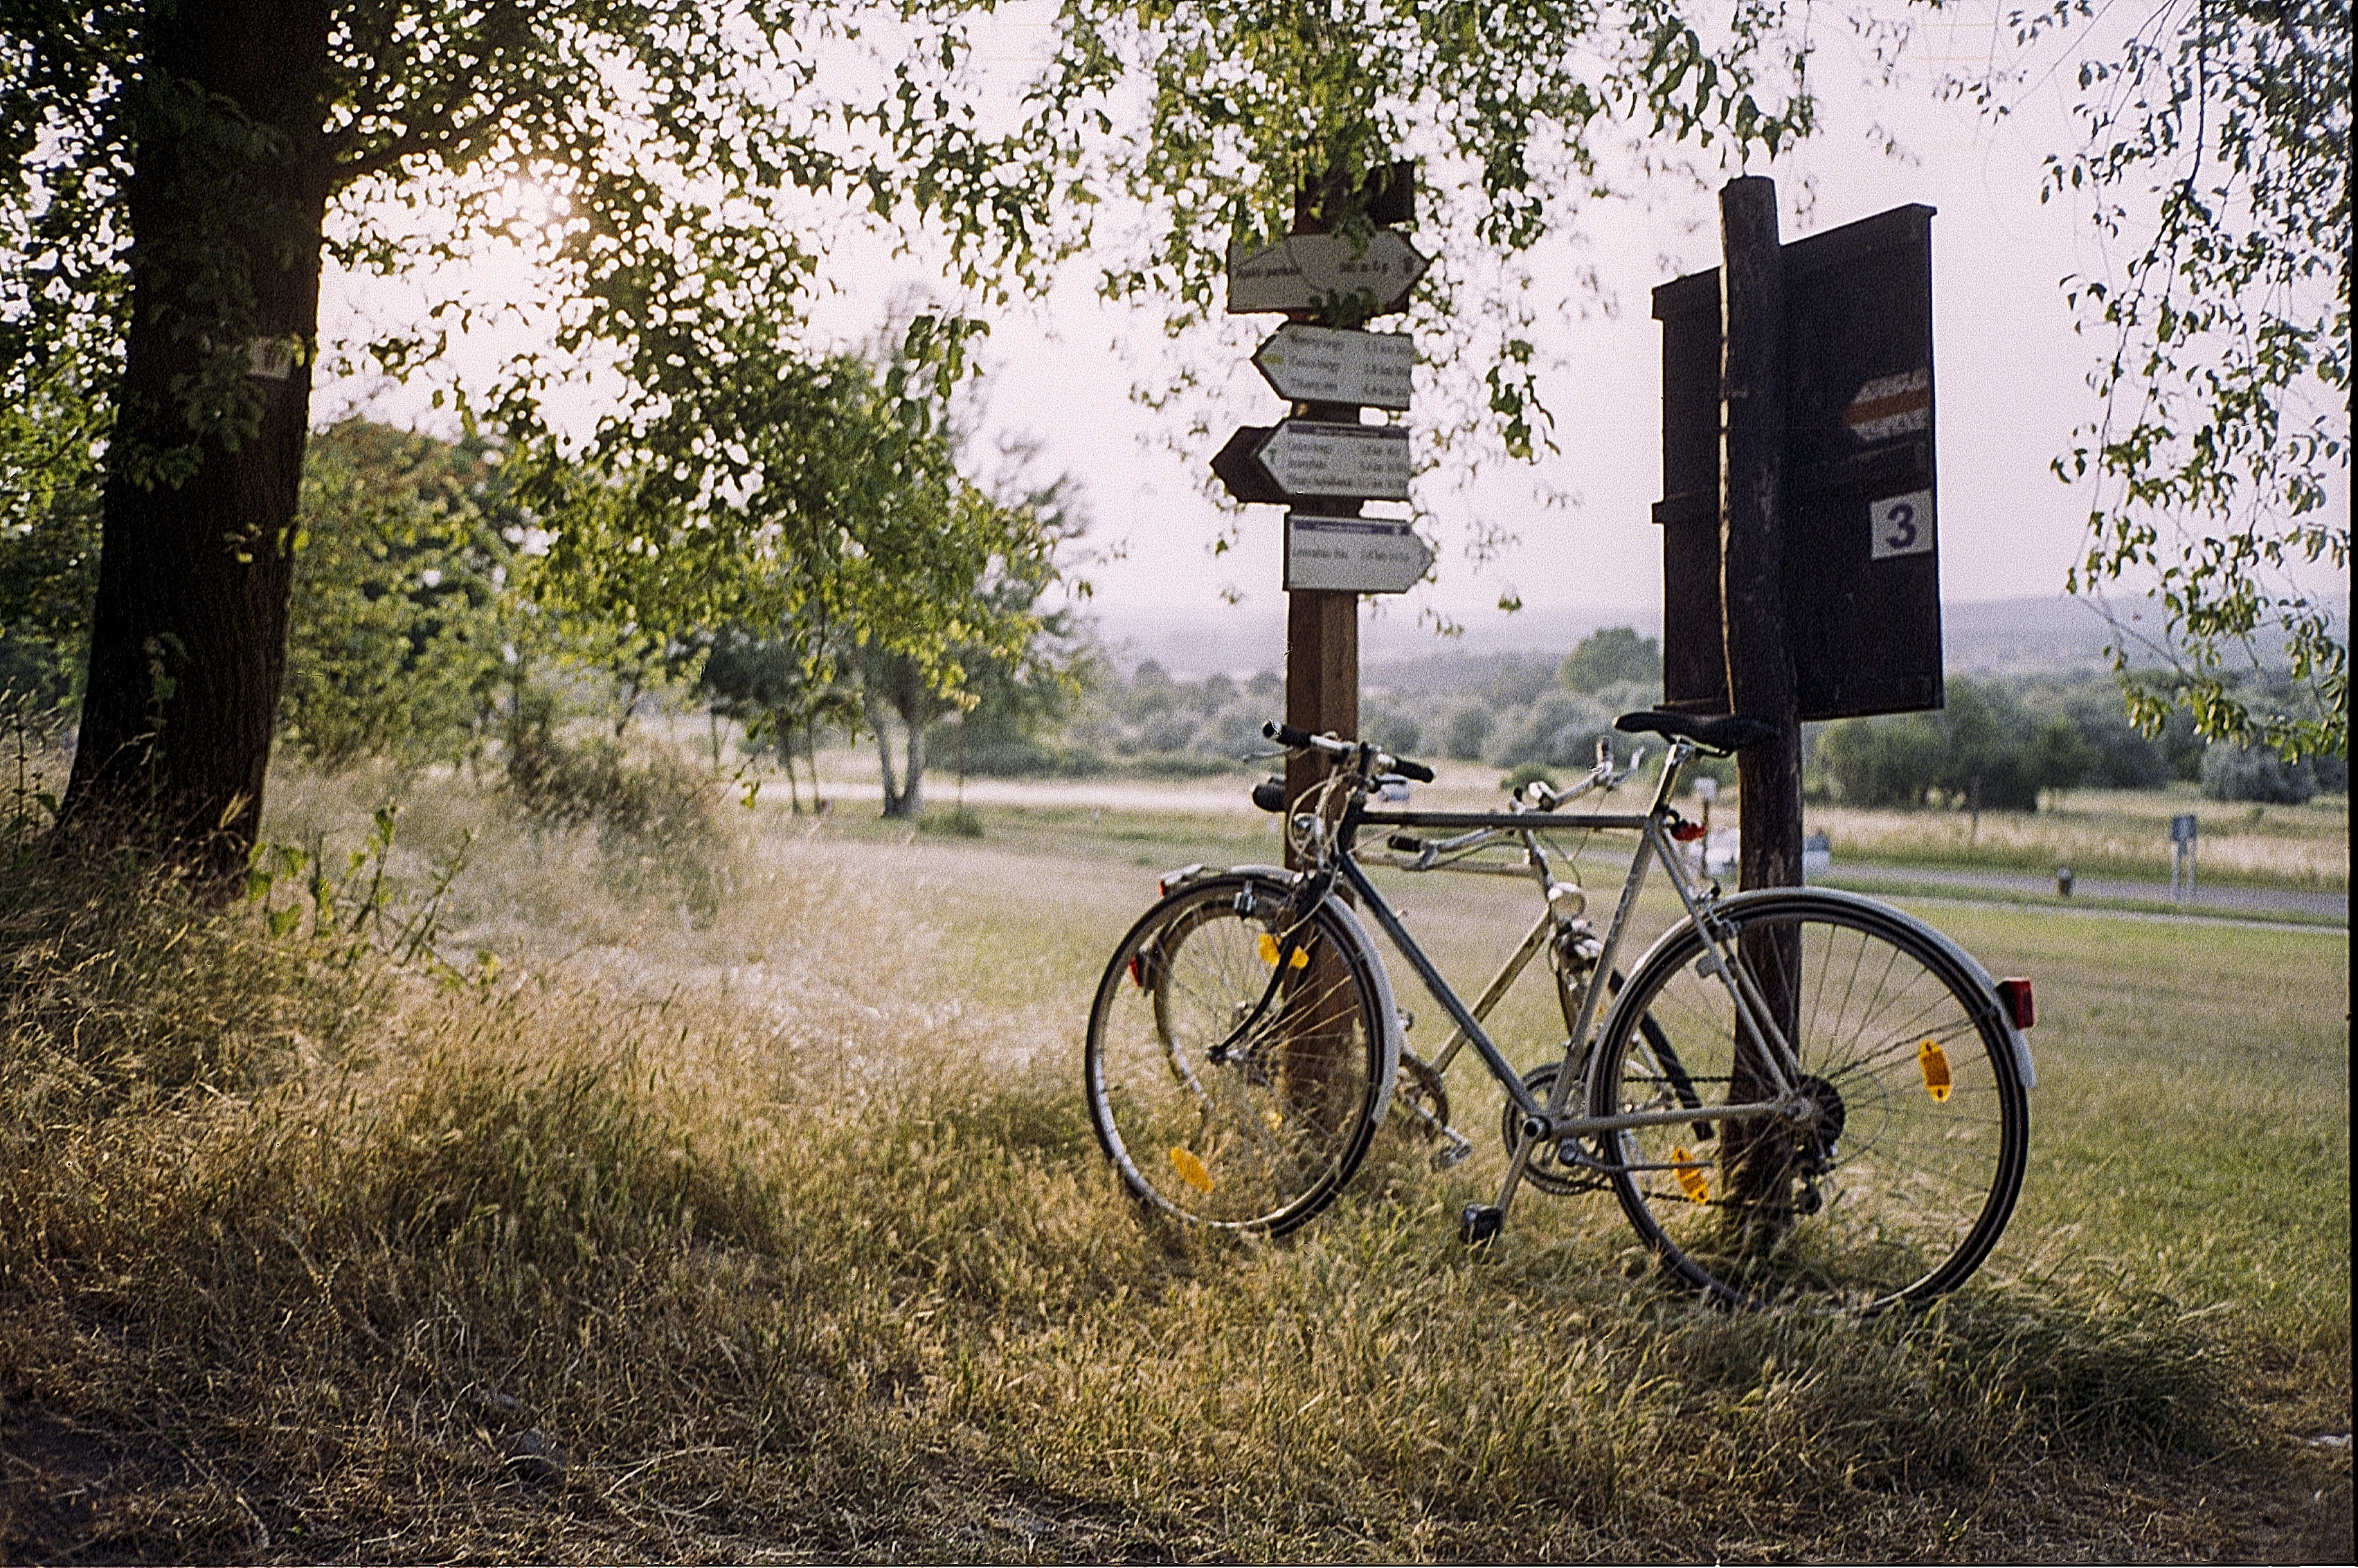 Bicycle rests against two signs with directions at the edge of the trees